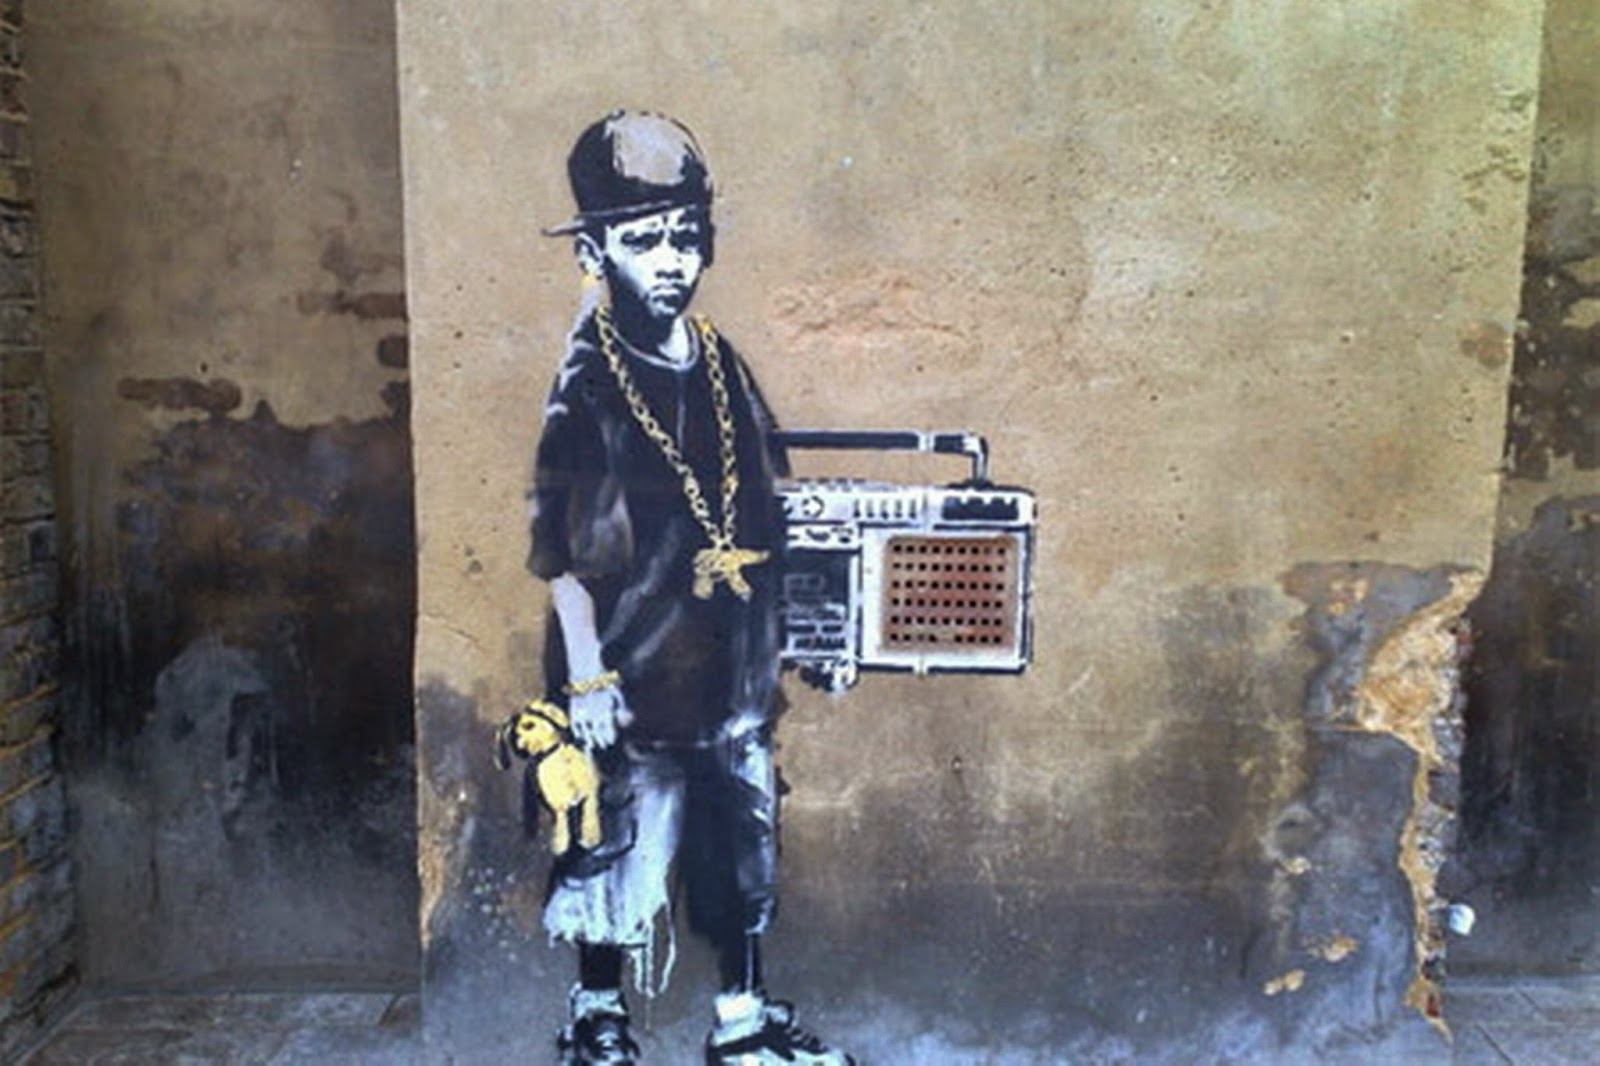 See More Of Banksy On Instagram Facebook Tumblr And Artists Website